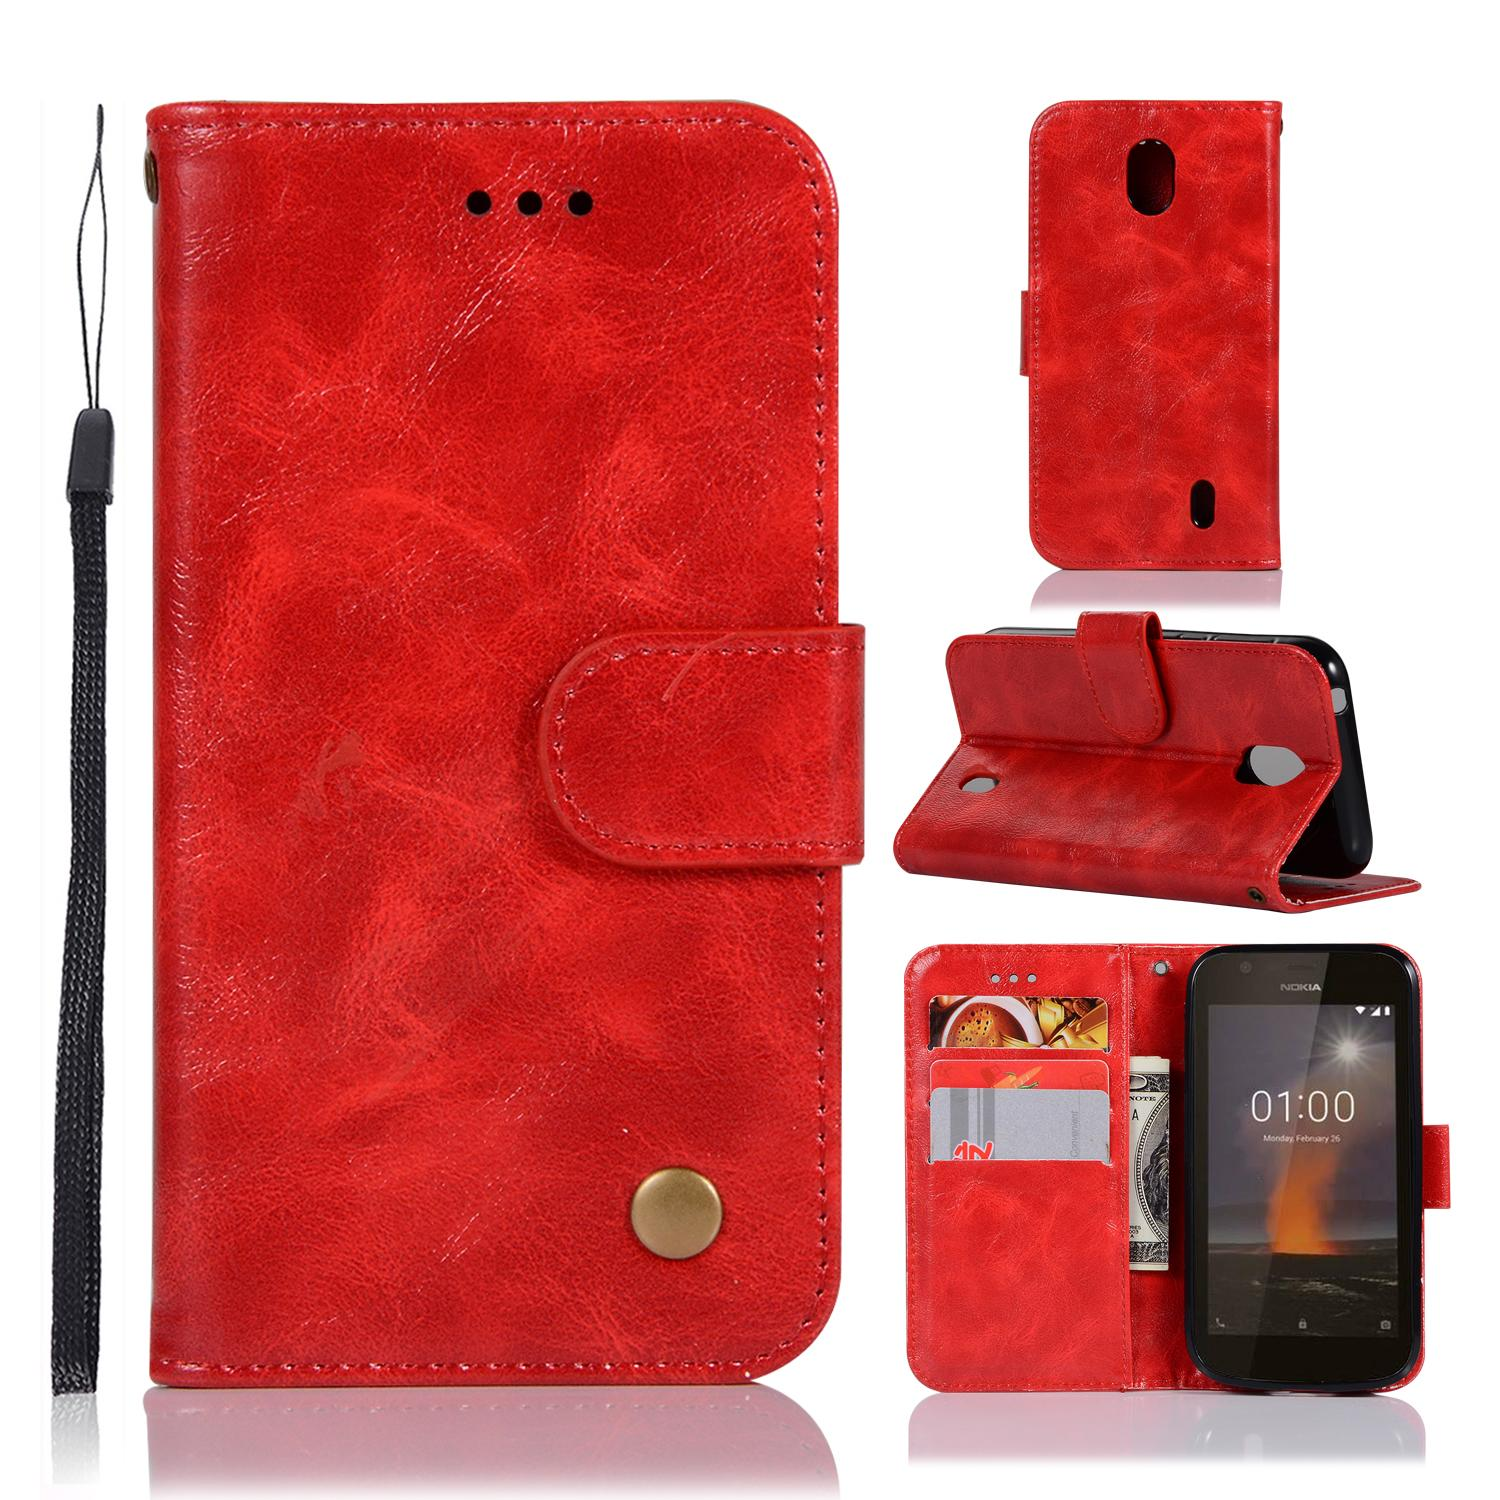 Casing For Nokia 1,reto Leather Wallet Case Magnetic Double Card Holder Flip Cover By Life Goes On.